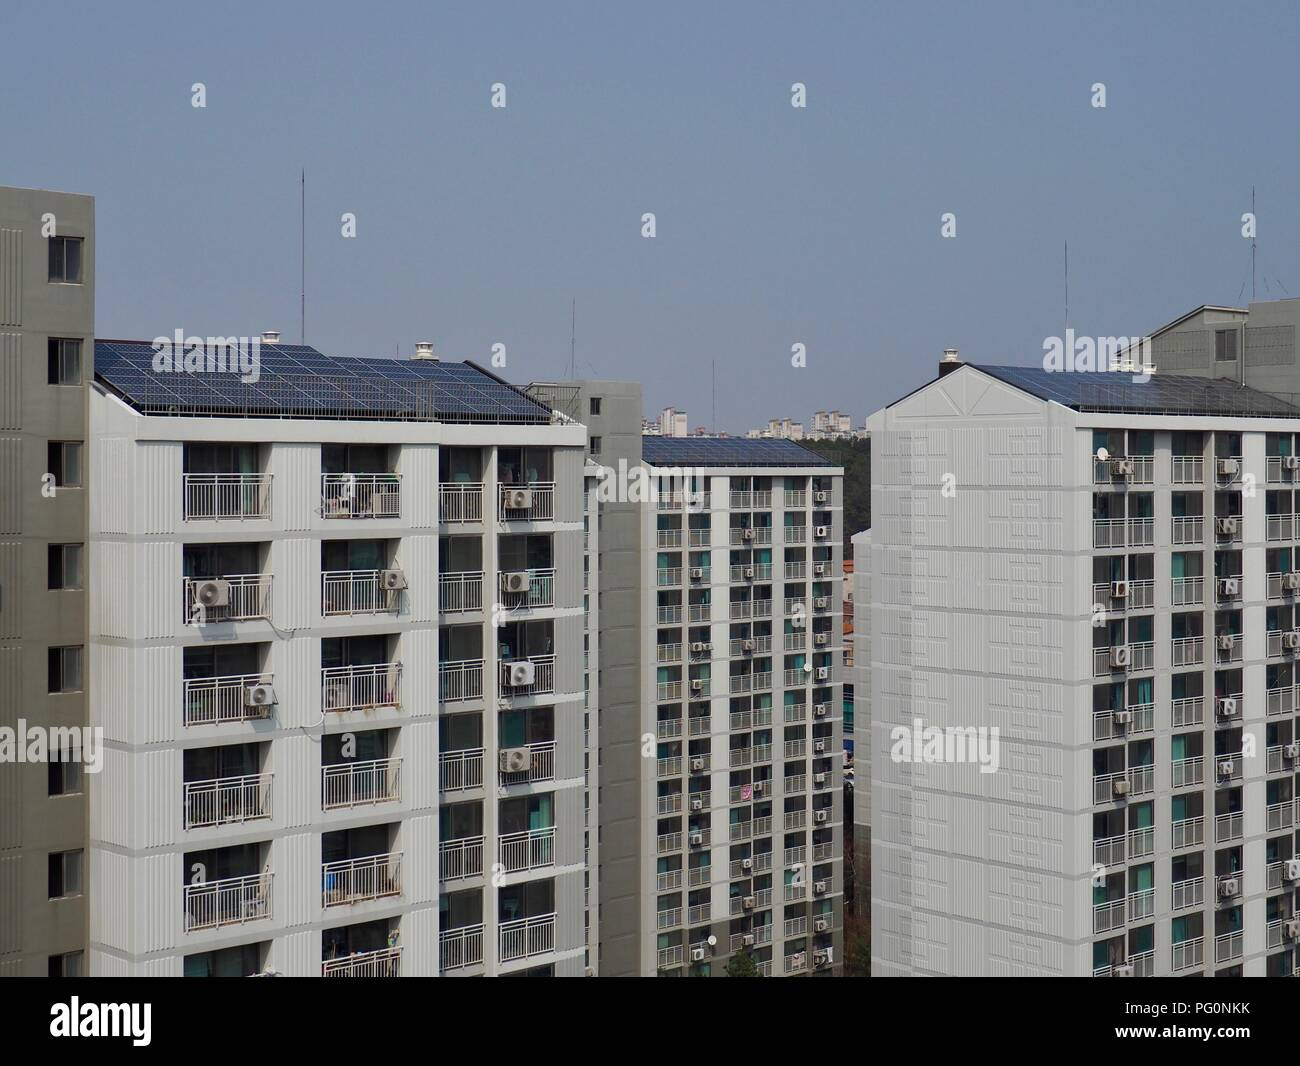 Apartment in South Korea with solar panels - Stock Image